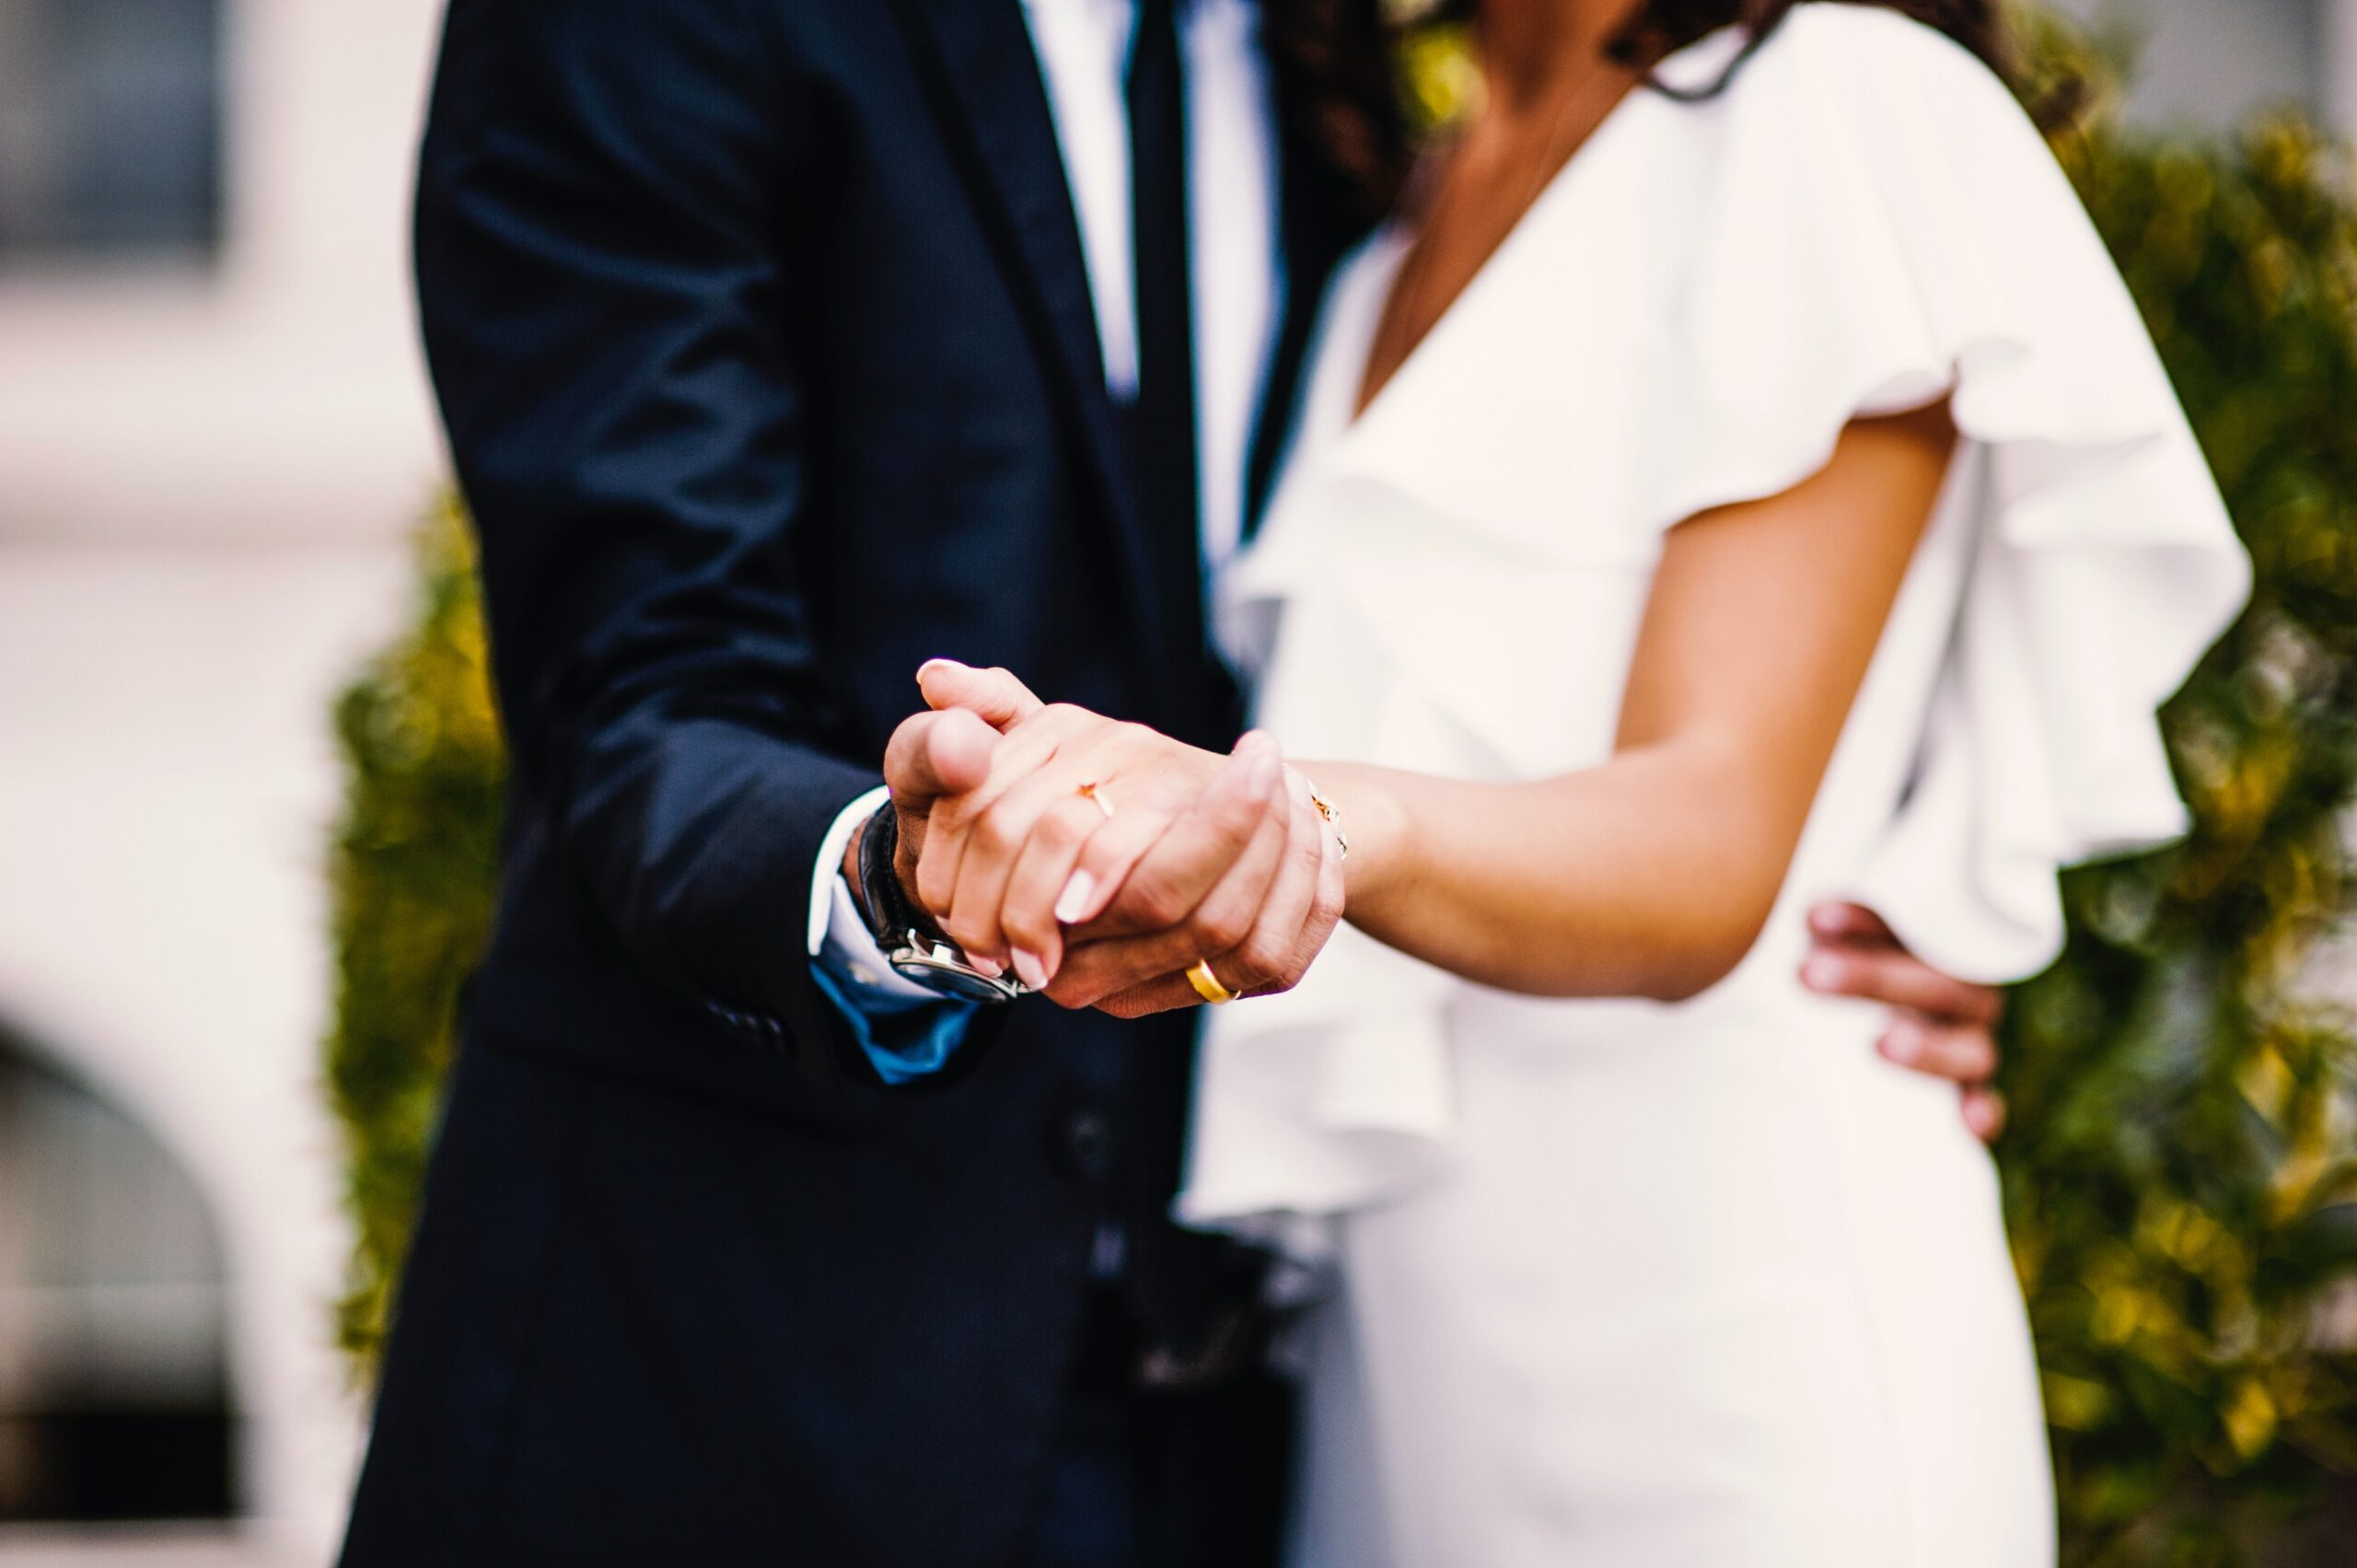 roles of the wedding party explained